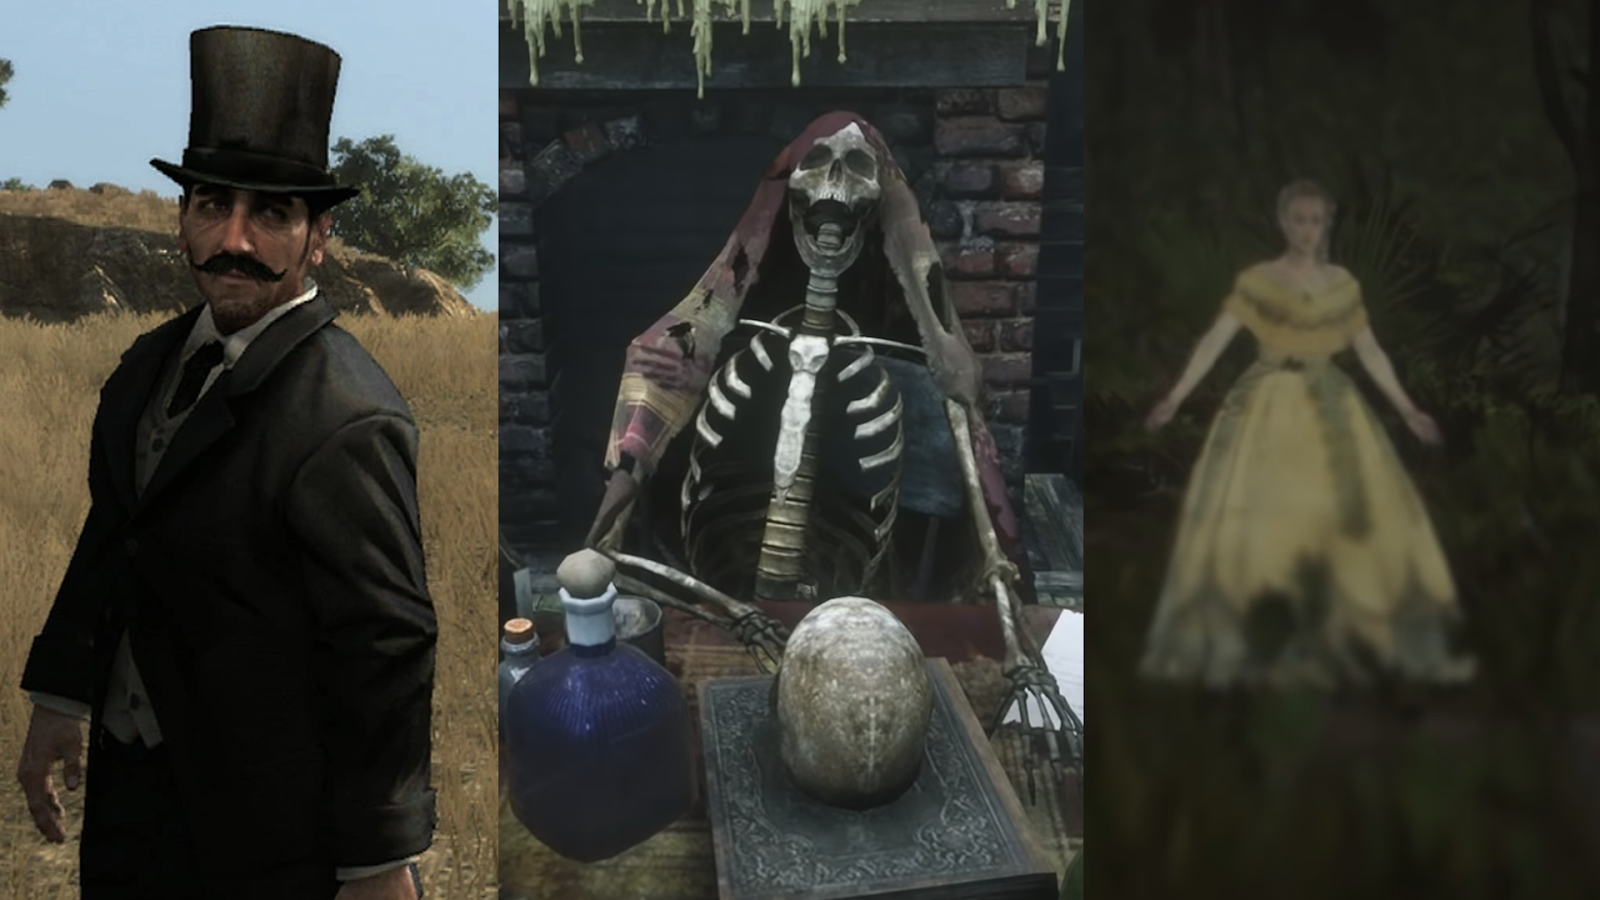 Hair Style Rdr2: Red Dead Redemption 2 Players Keep Finding Creepy Easter Eggs